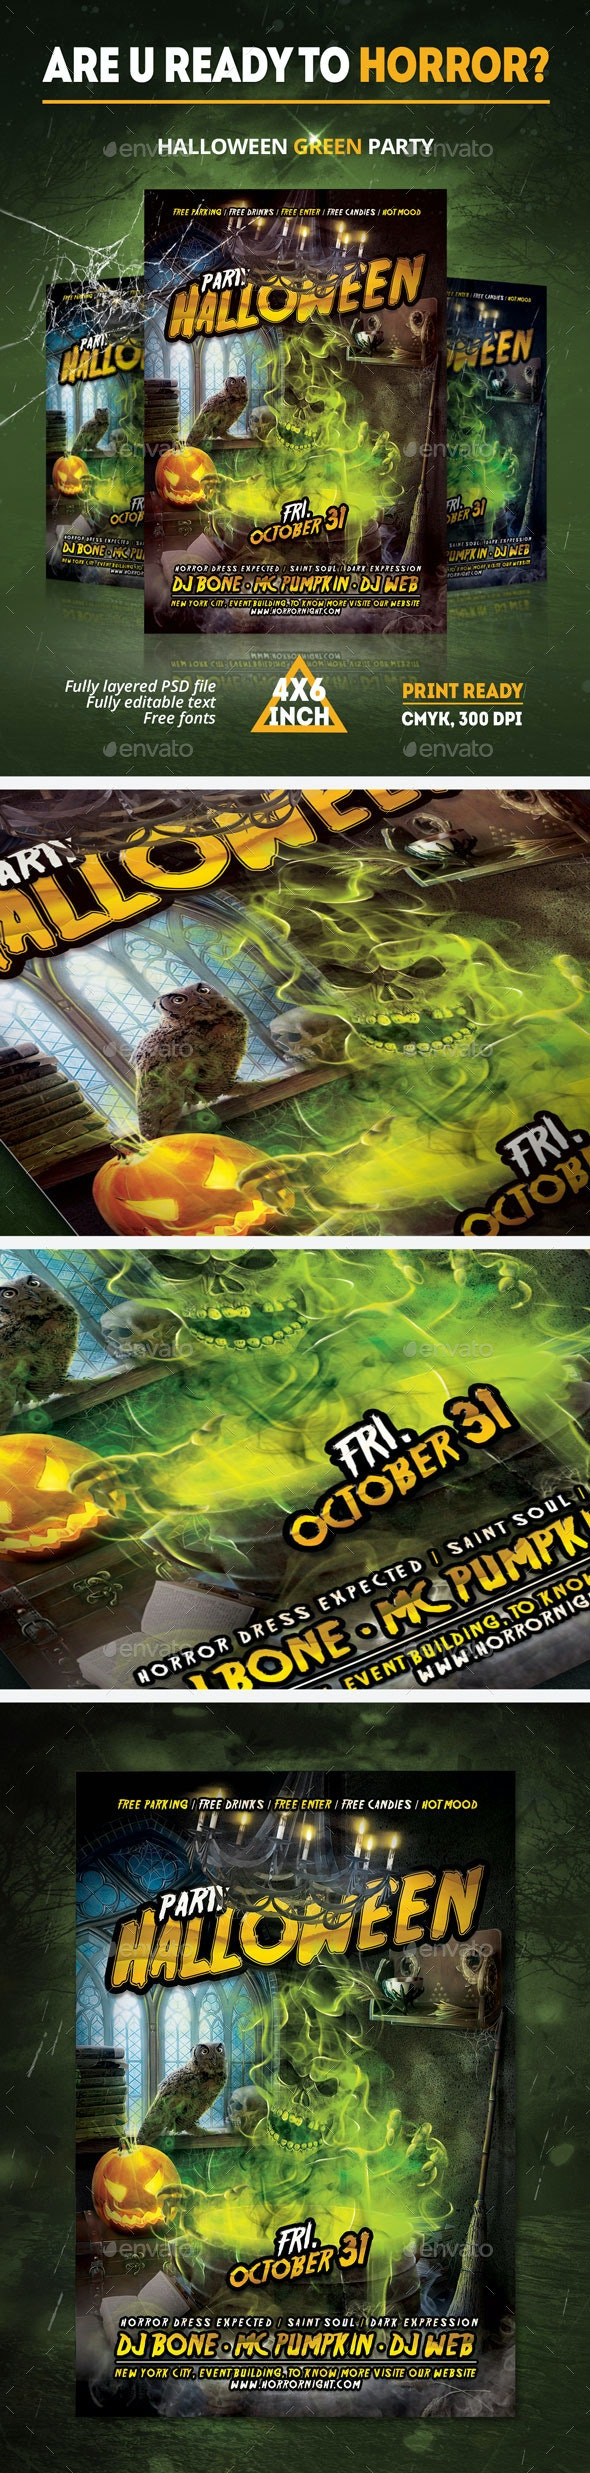 Halloween Green paty Flyer - Clubs & Parties Events